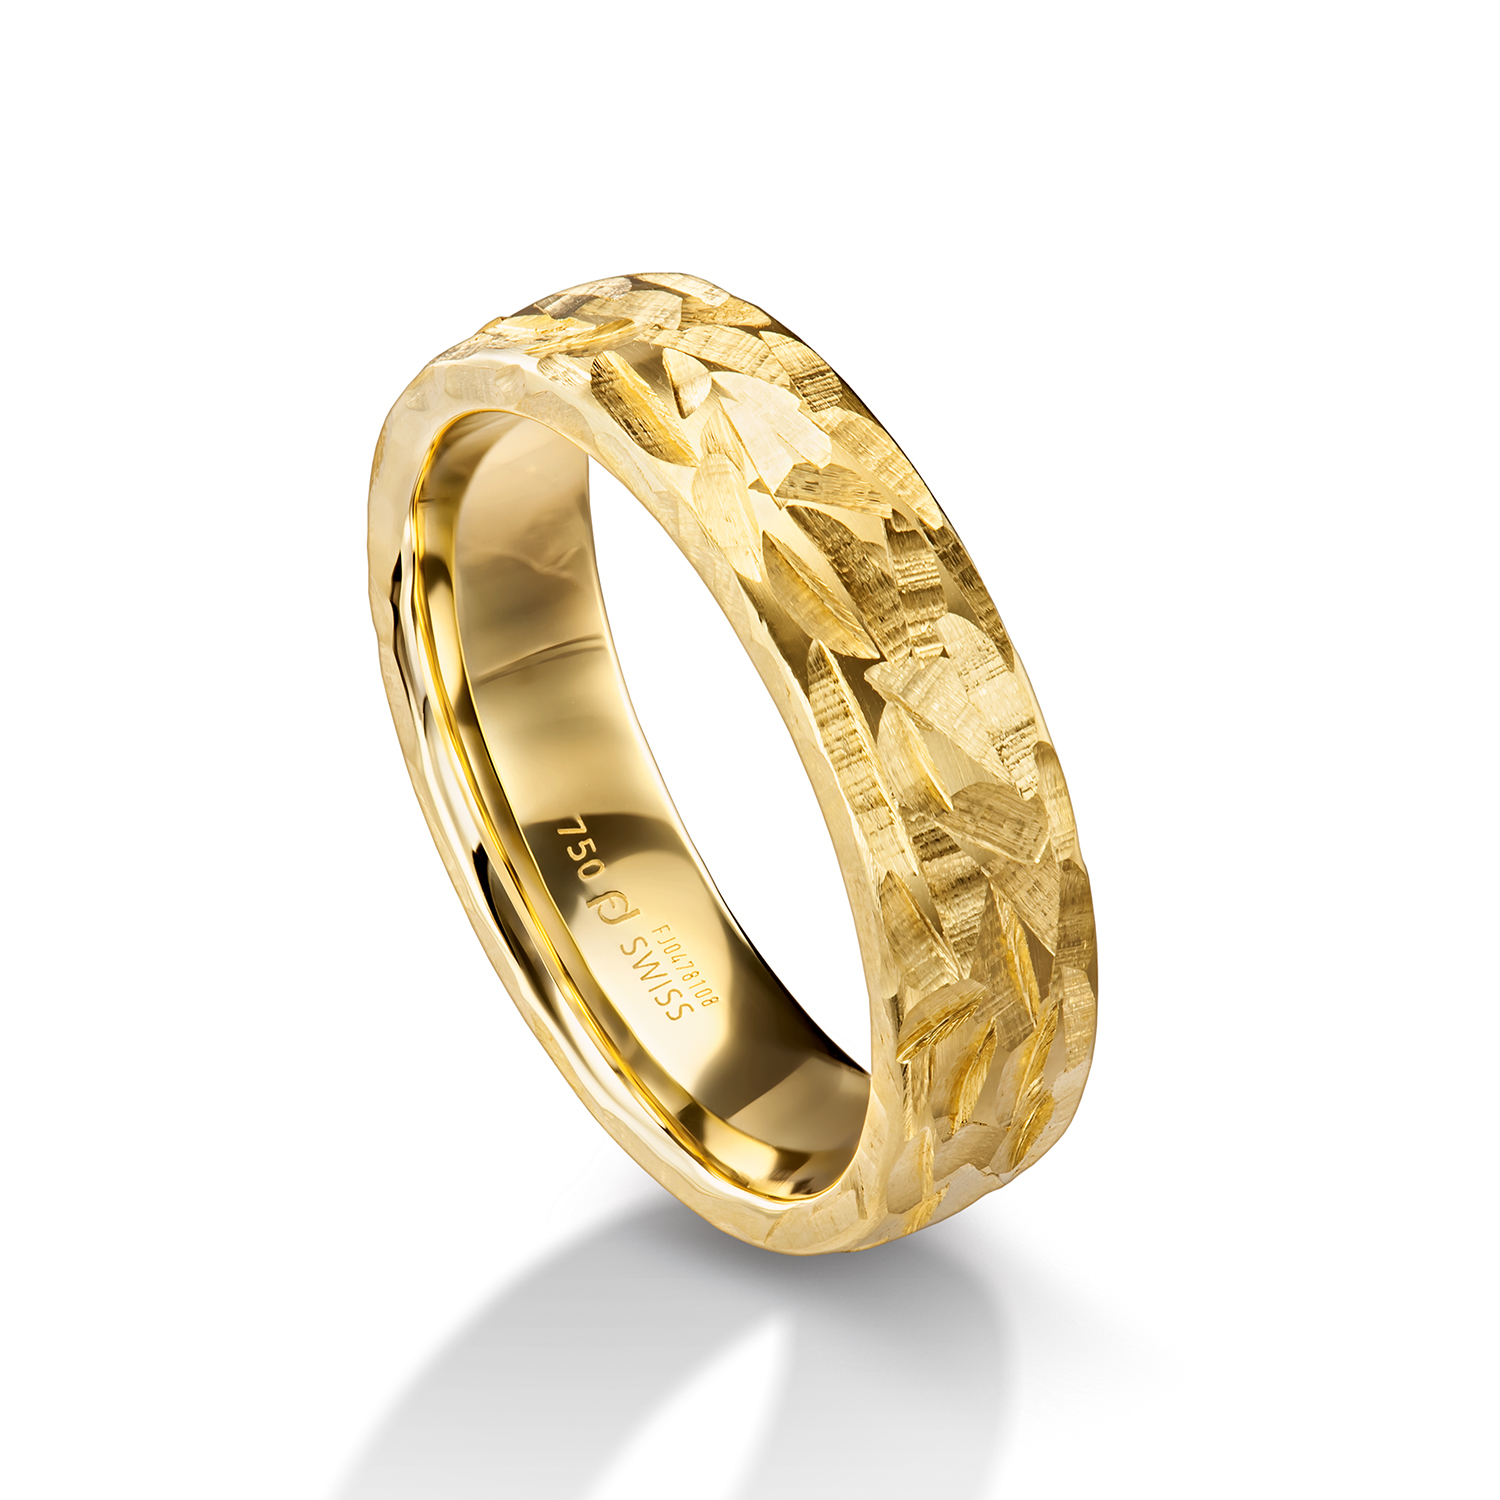 Man's world ring in yellow gold